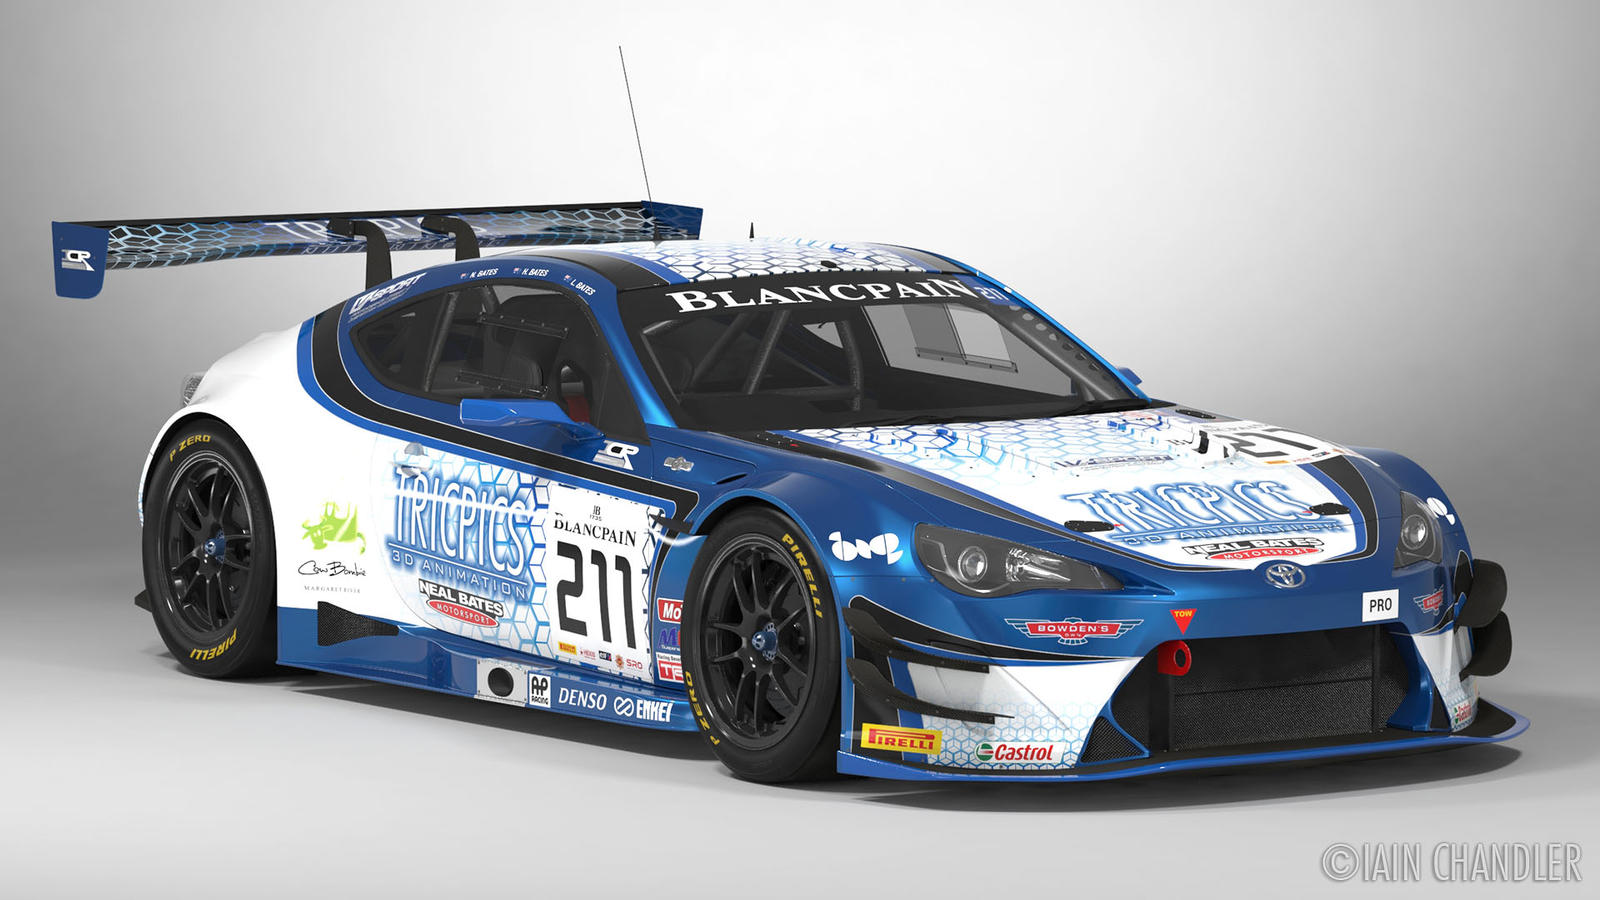 FIA-GT3 ICR Tricpics Toyota GT86 #211 by The-IC on DeviantArt